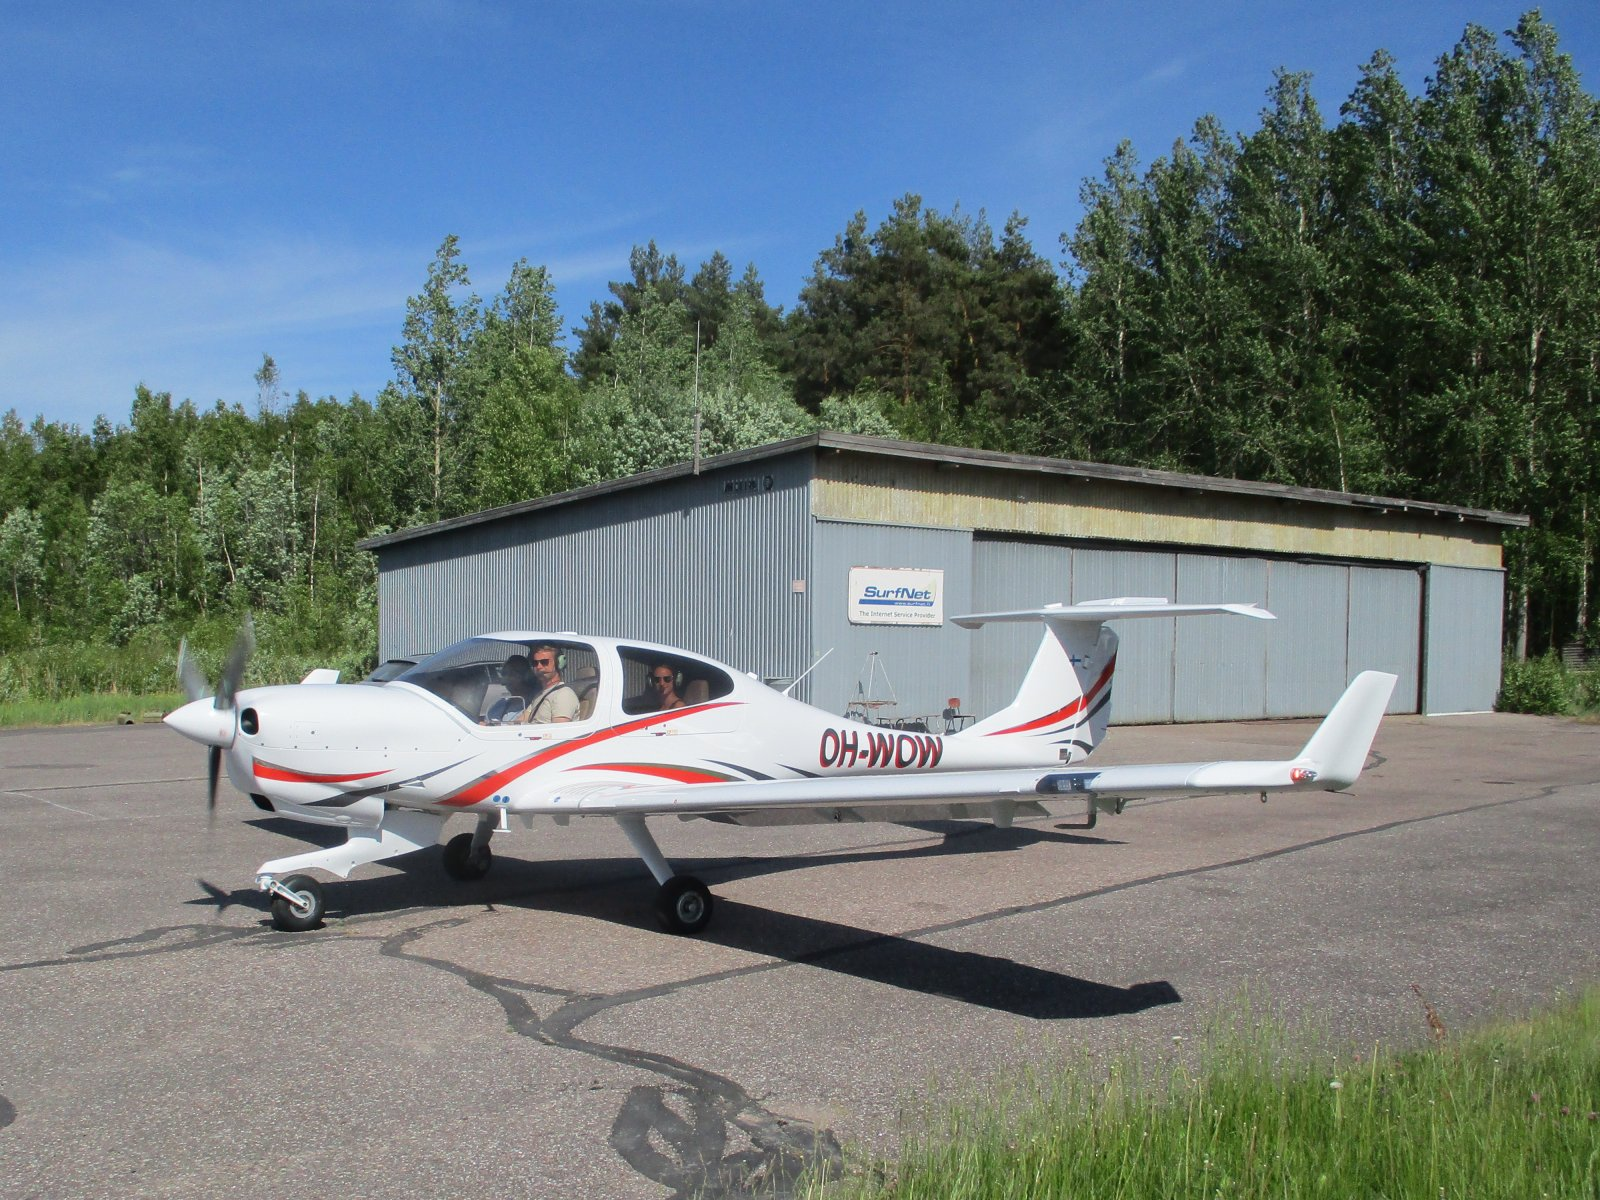 Diamond DA 40 NG OH-WOW EFHN 2018-06-03